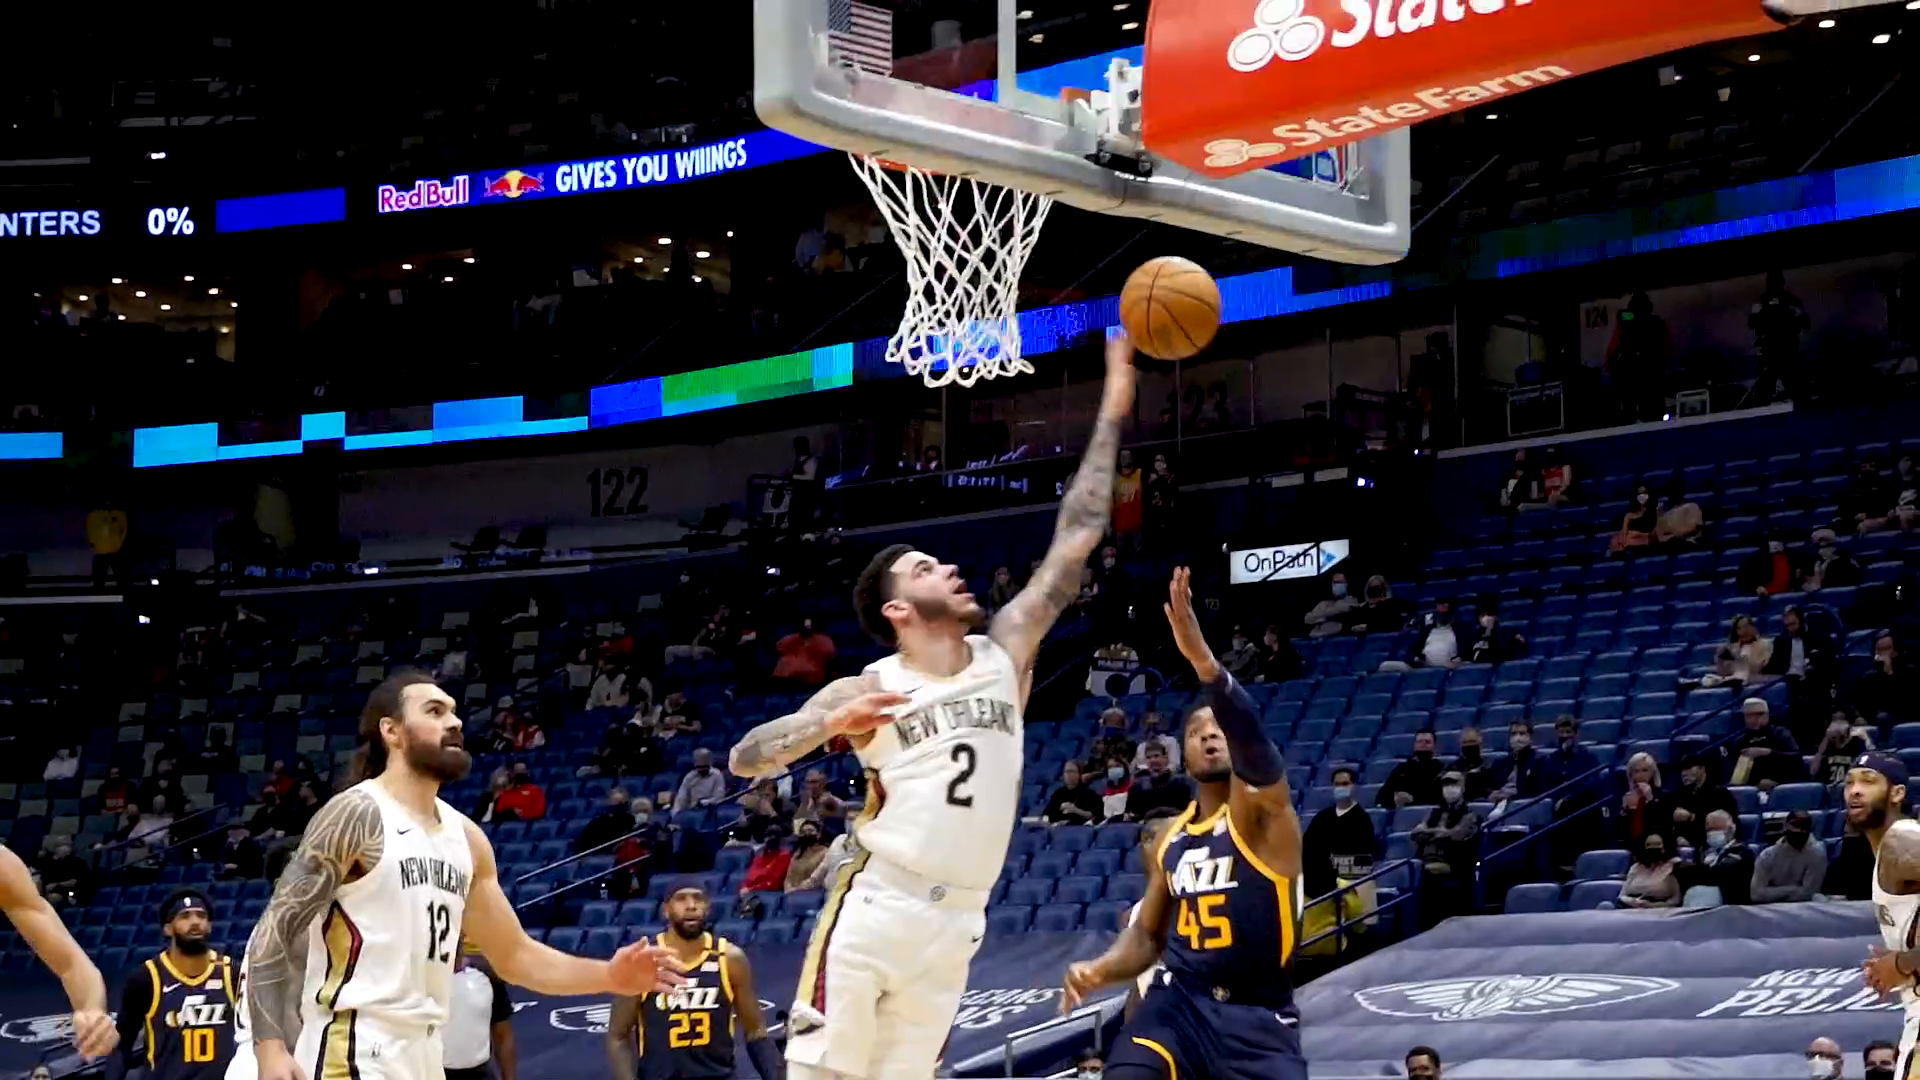 Pelicans vs. Jazz Slo-Mo Highlights 3/1/21